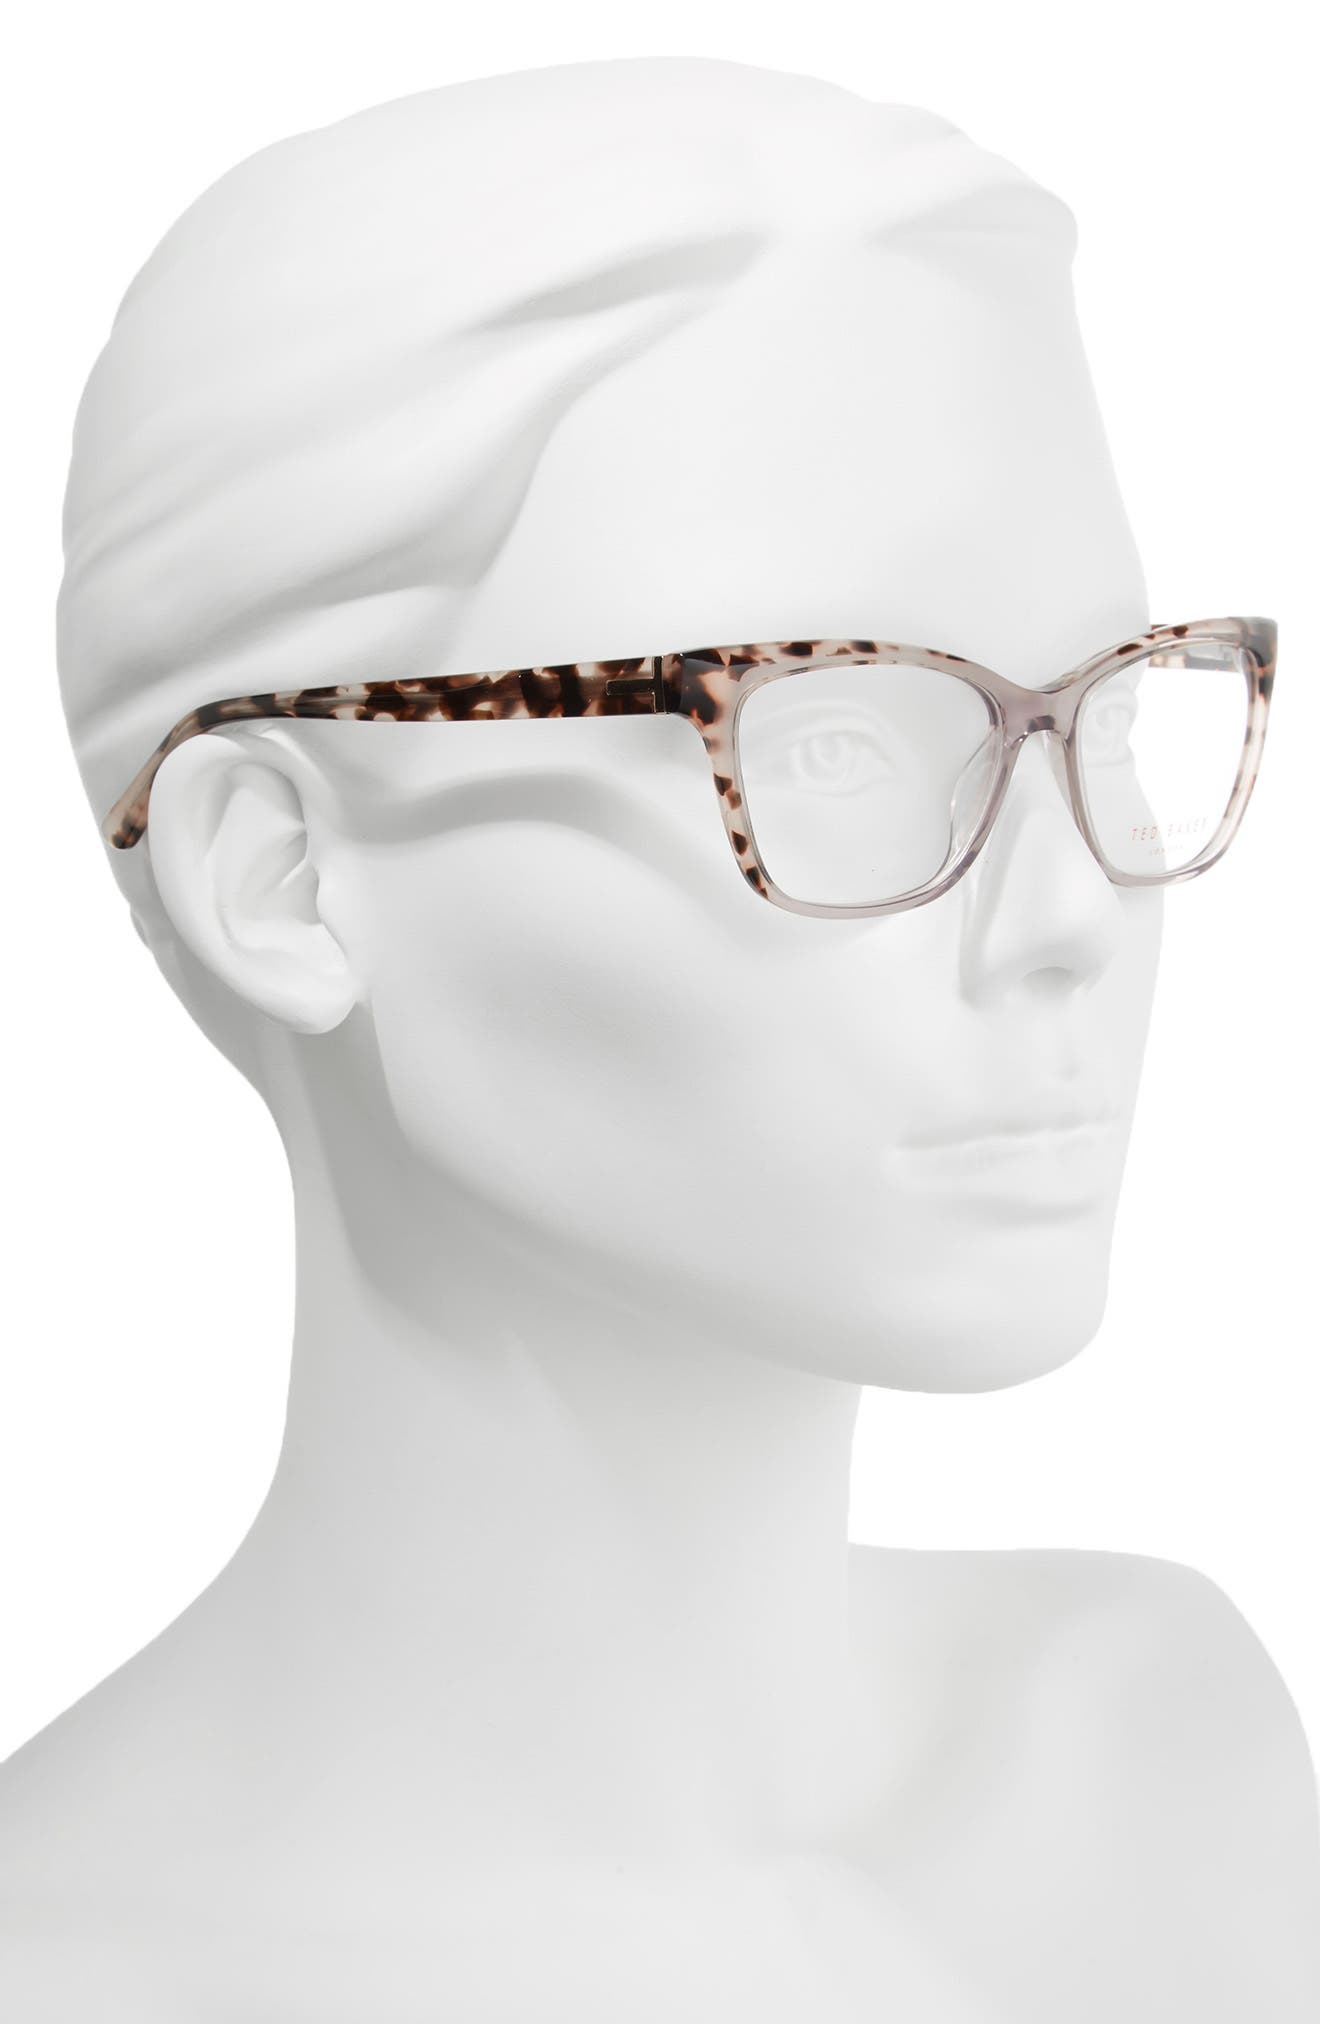 53mm Optical Cat Eye Glasses,                             Alternate thumbnail 4, color,